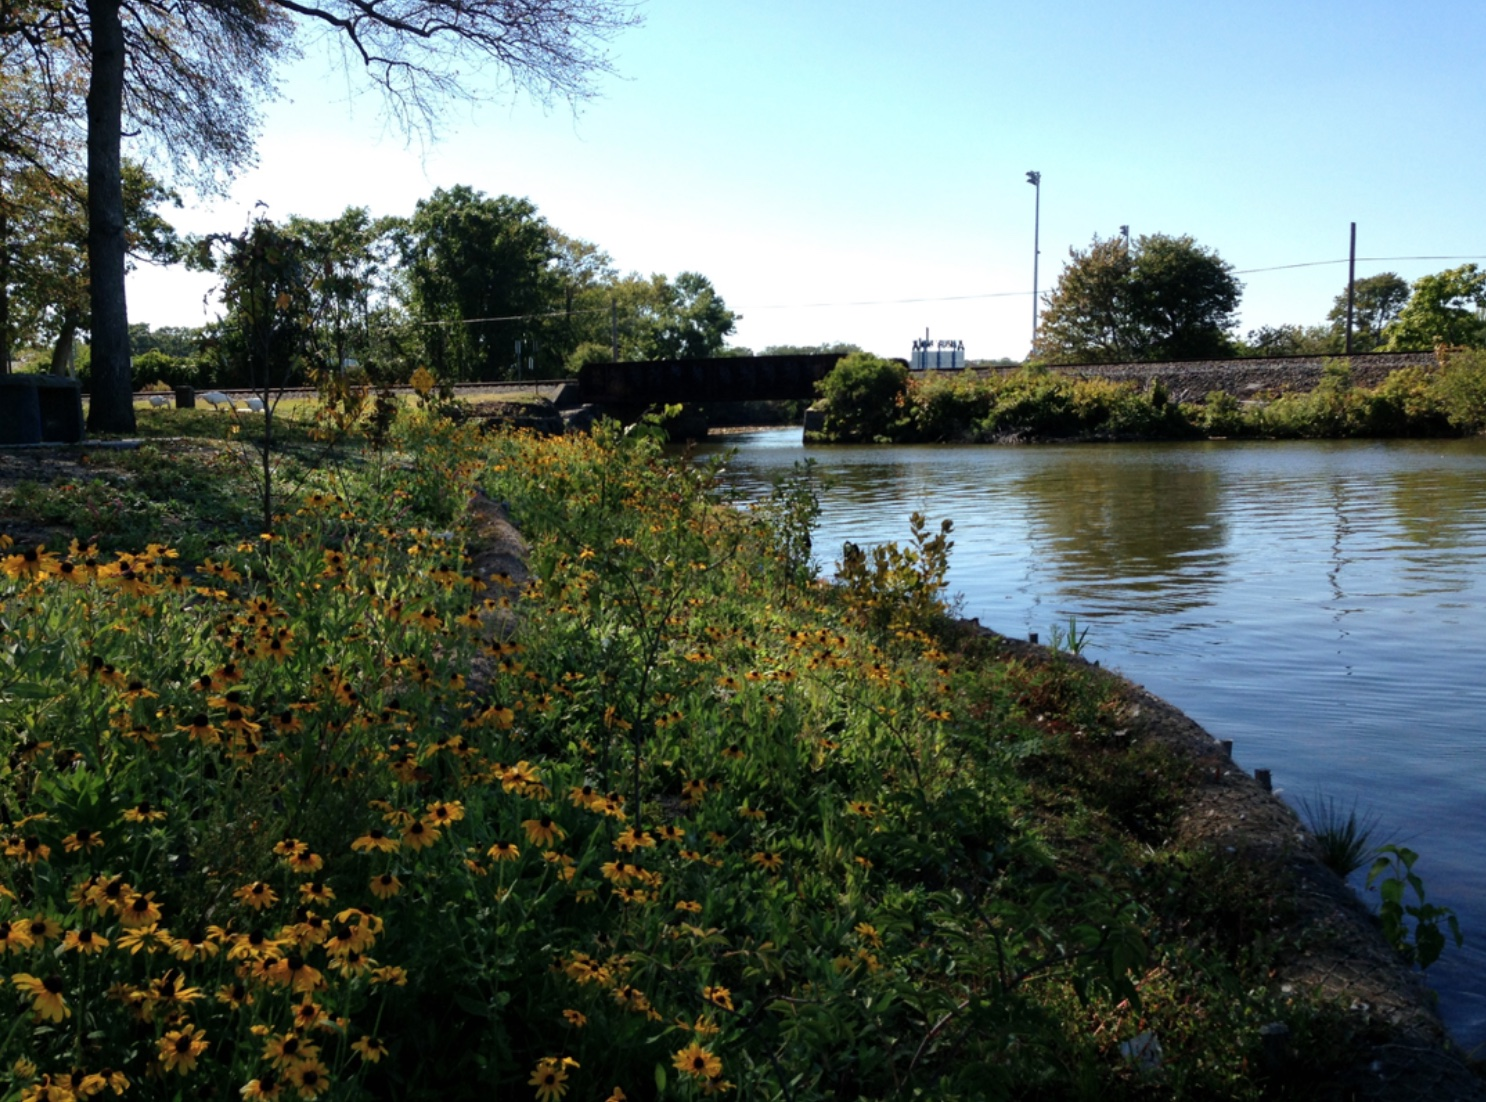 Restored shoreline at the Asbury Park Boat Launch in Deal Lake